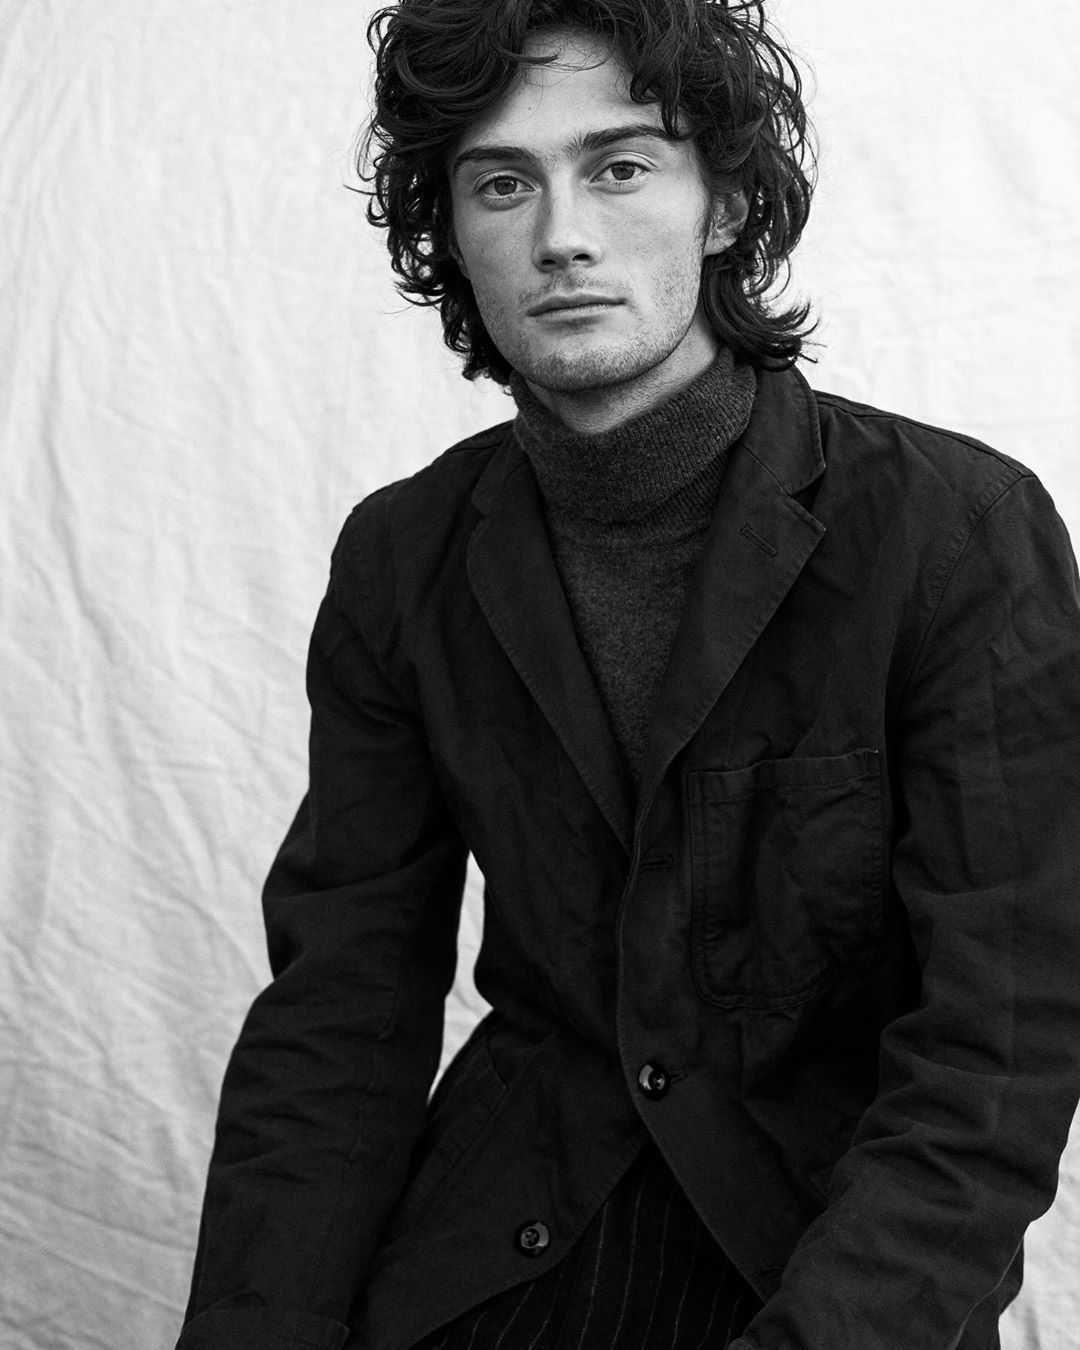 Model and actor Oli Green